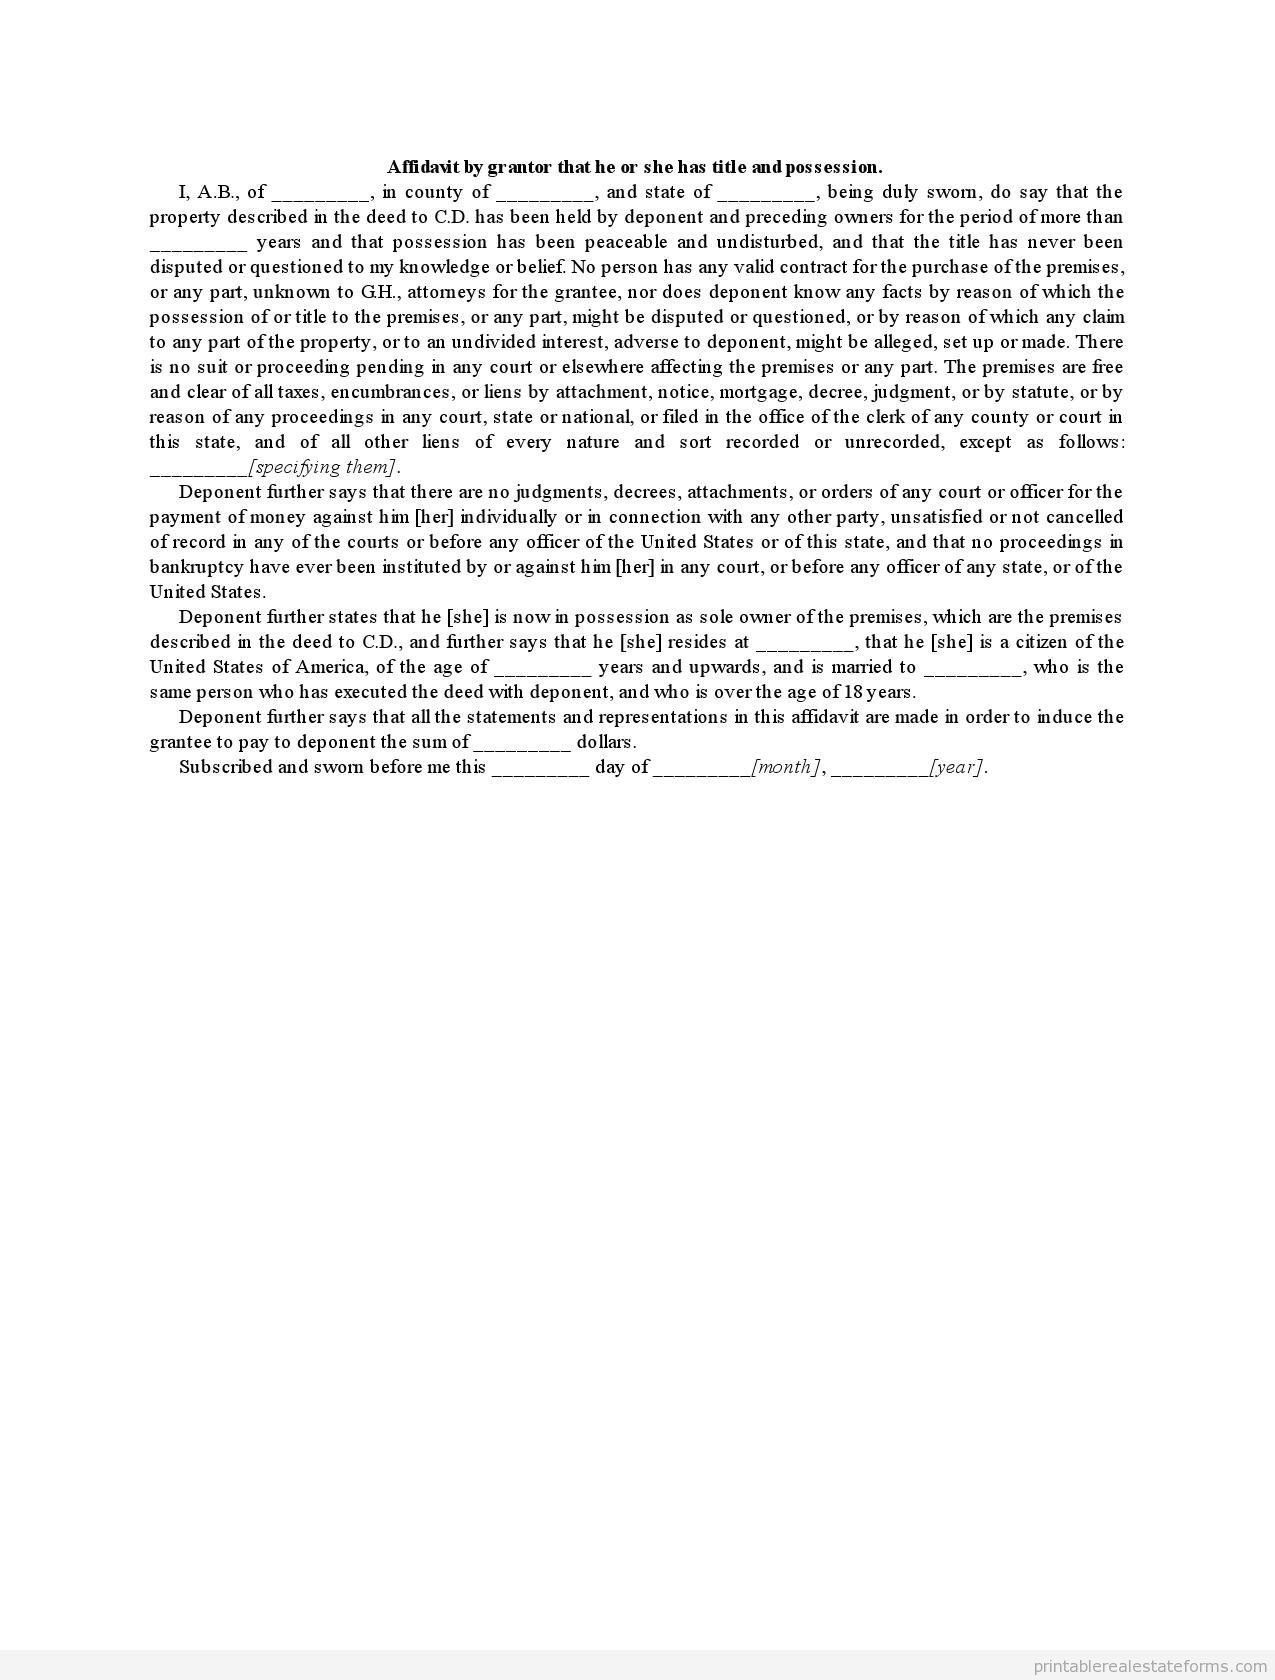 Sample Printable affidavit by grantor that he or she has title and ...